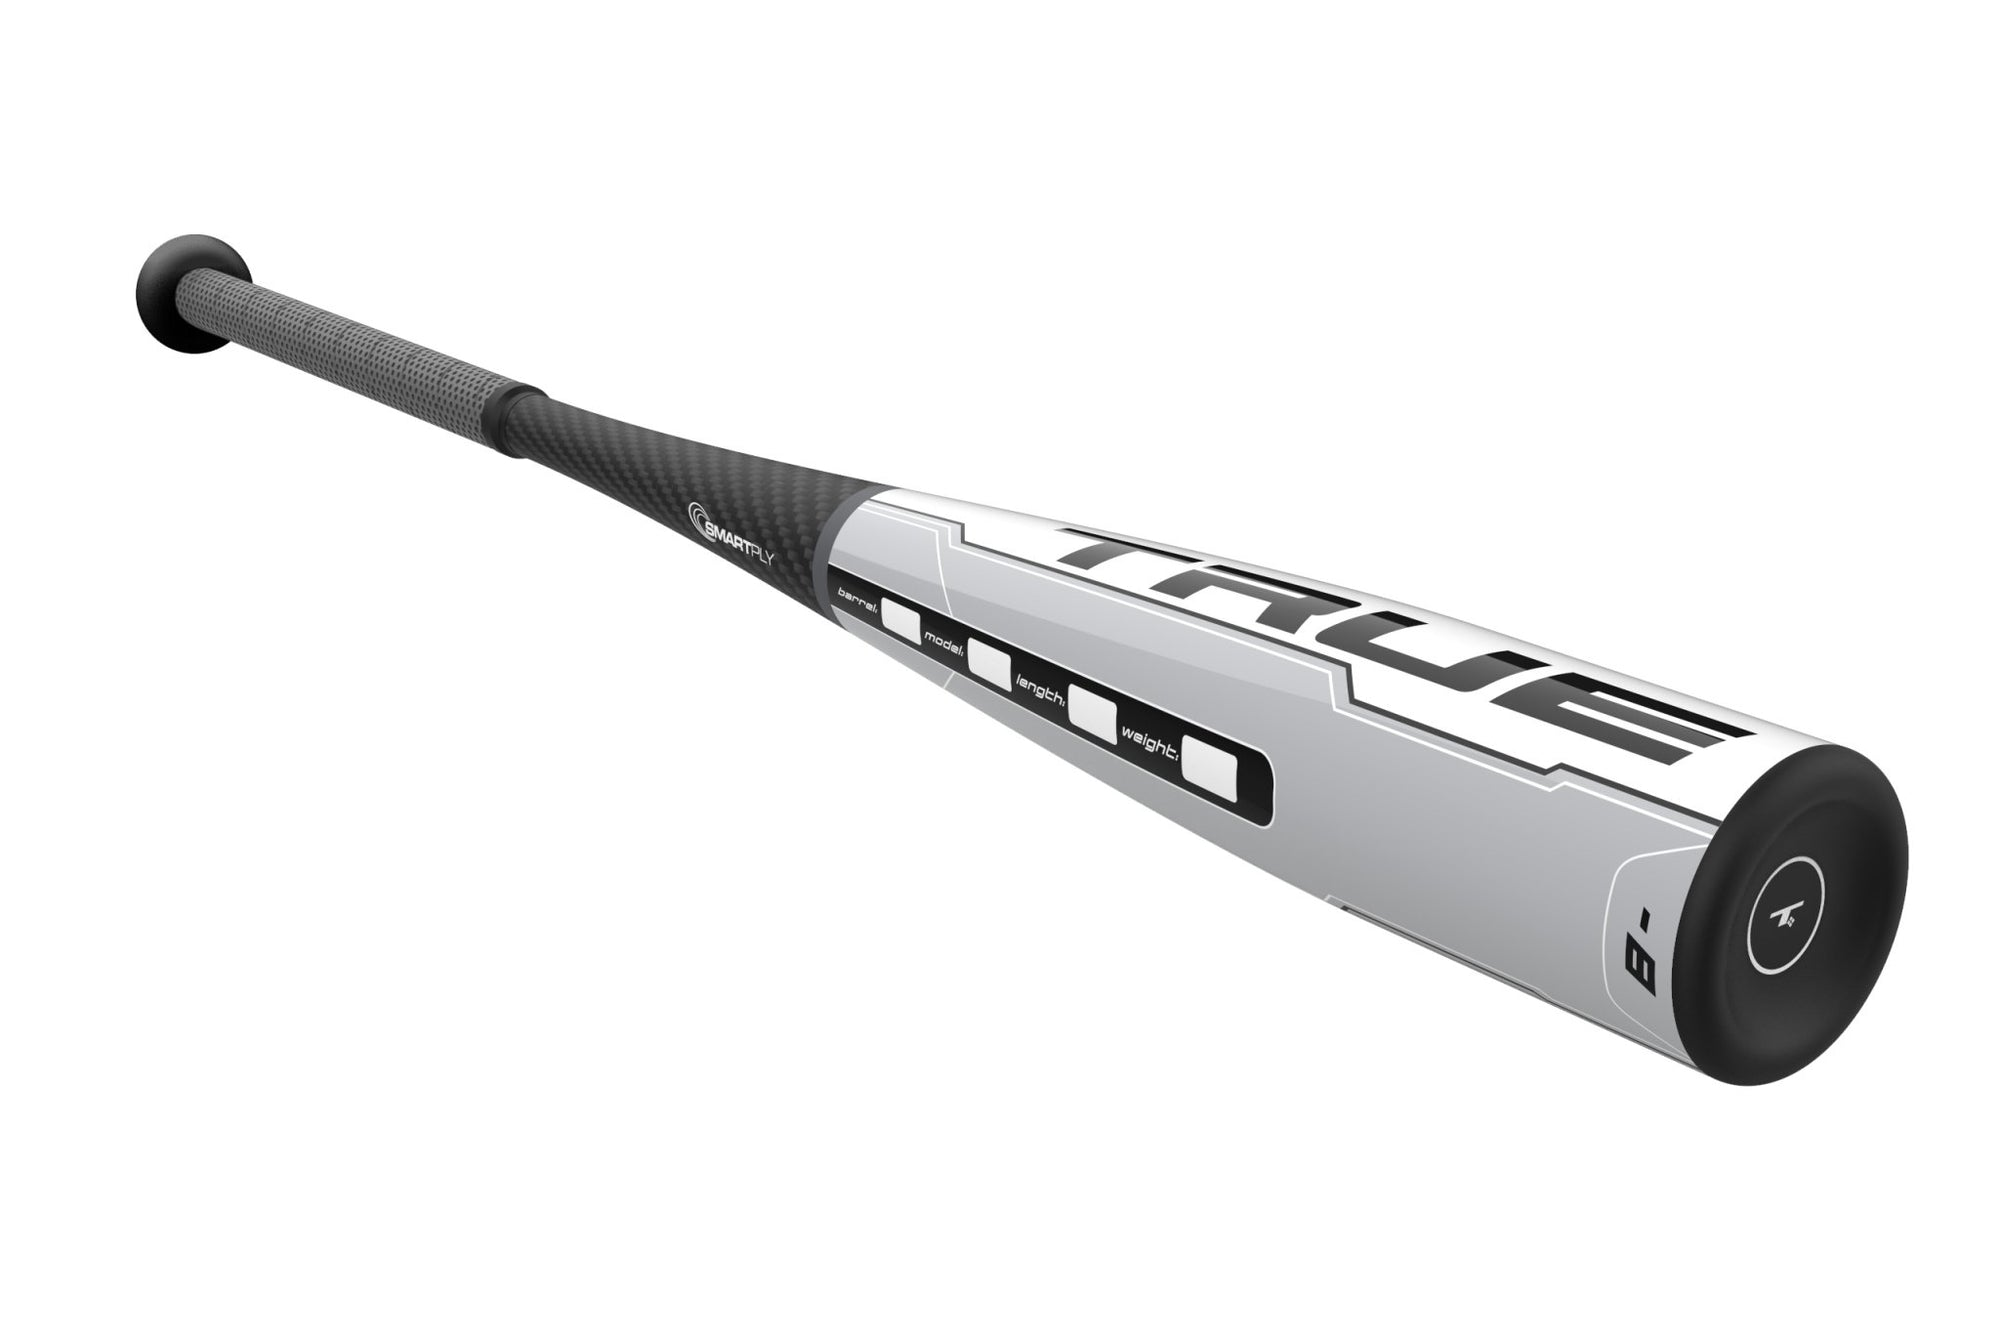 TRUE T2X - 8 USSSA - No Errors Sports